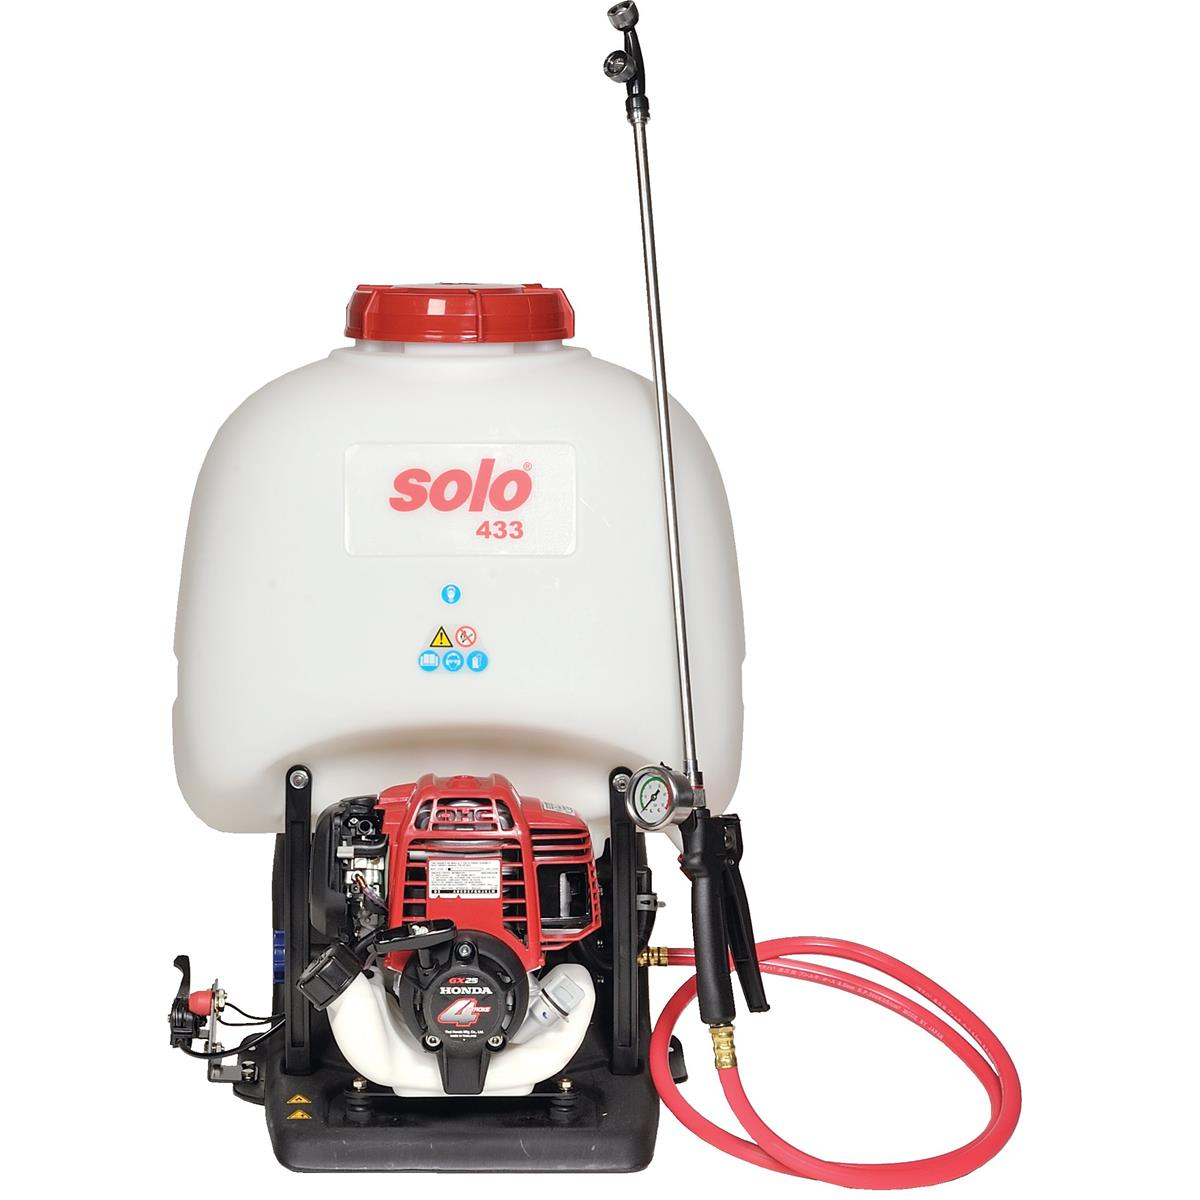 High-Pressure Motorized 5-gal. Backpack Sprayer